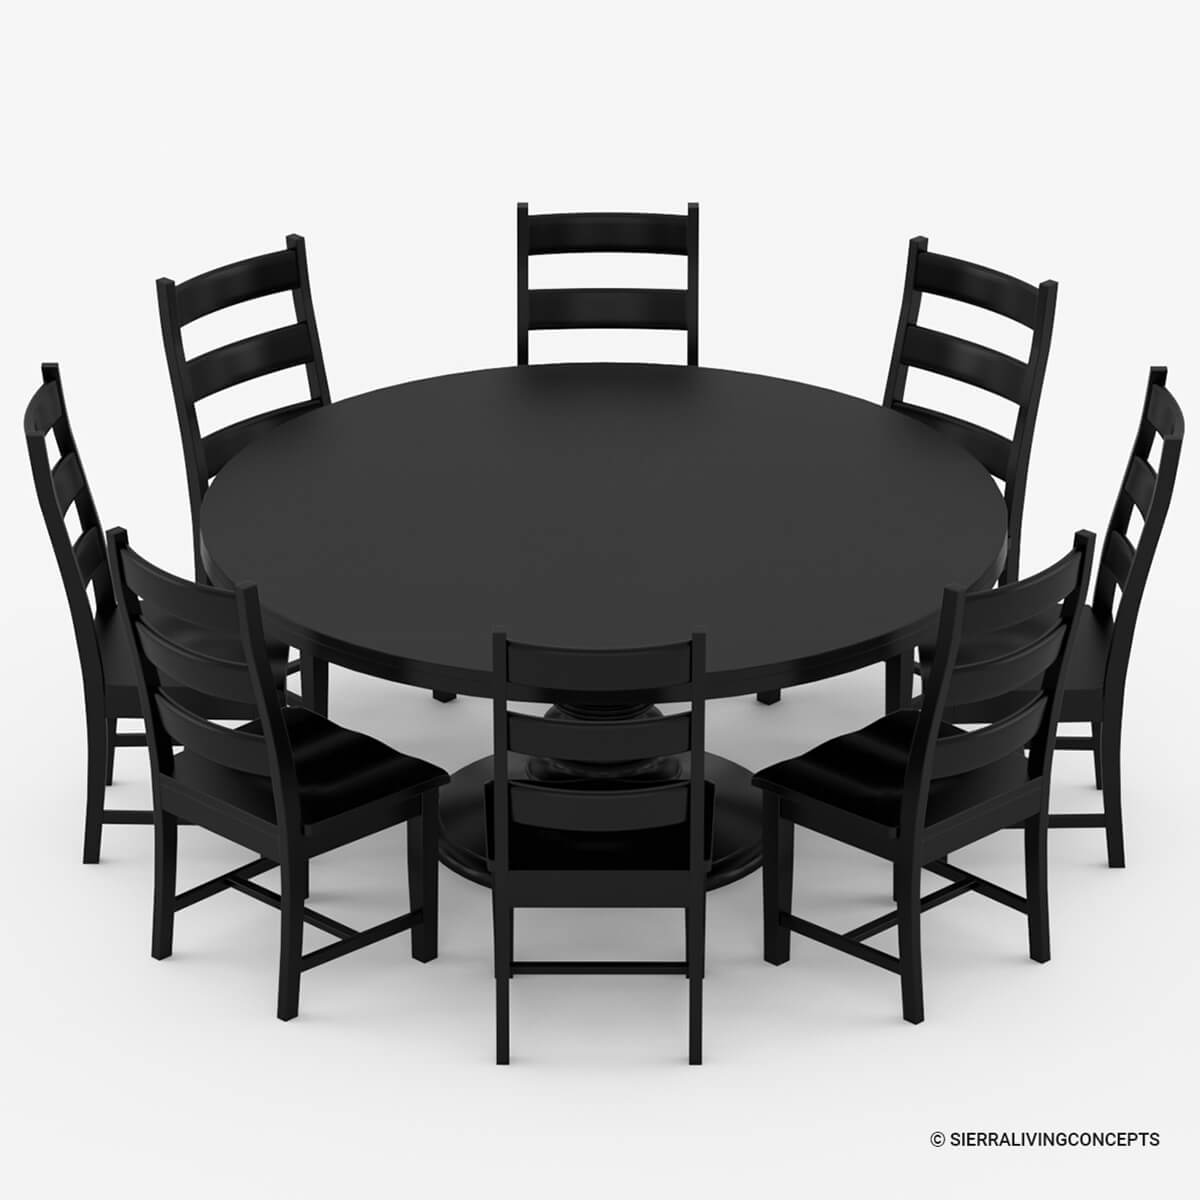 Nottingham rustic solid wood black round dining room table set for Black dining table